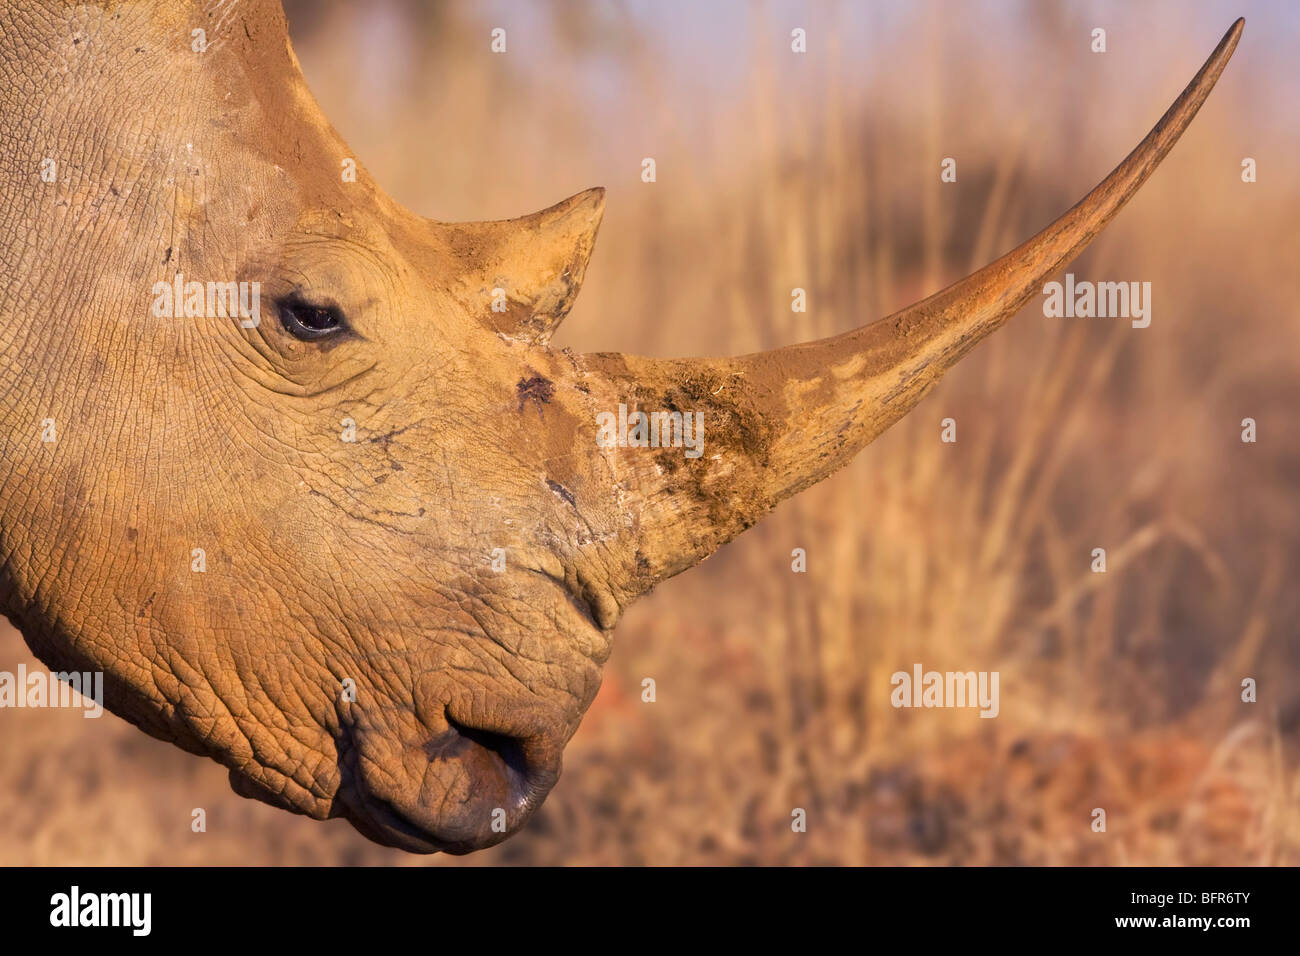 Side view close-up of White rhino with long horn - Stock Image